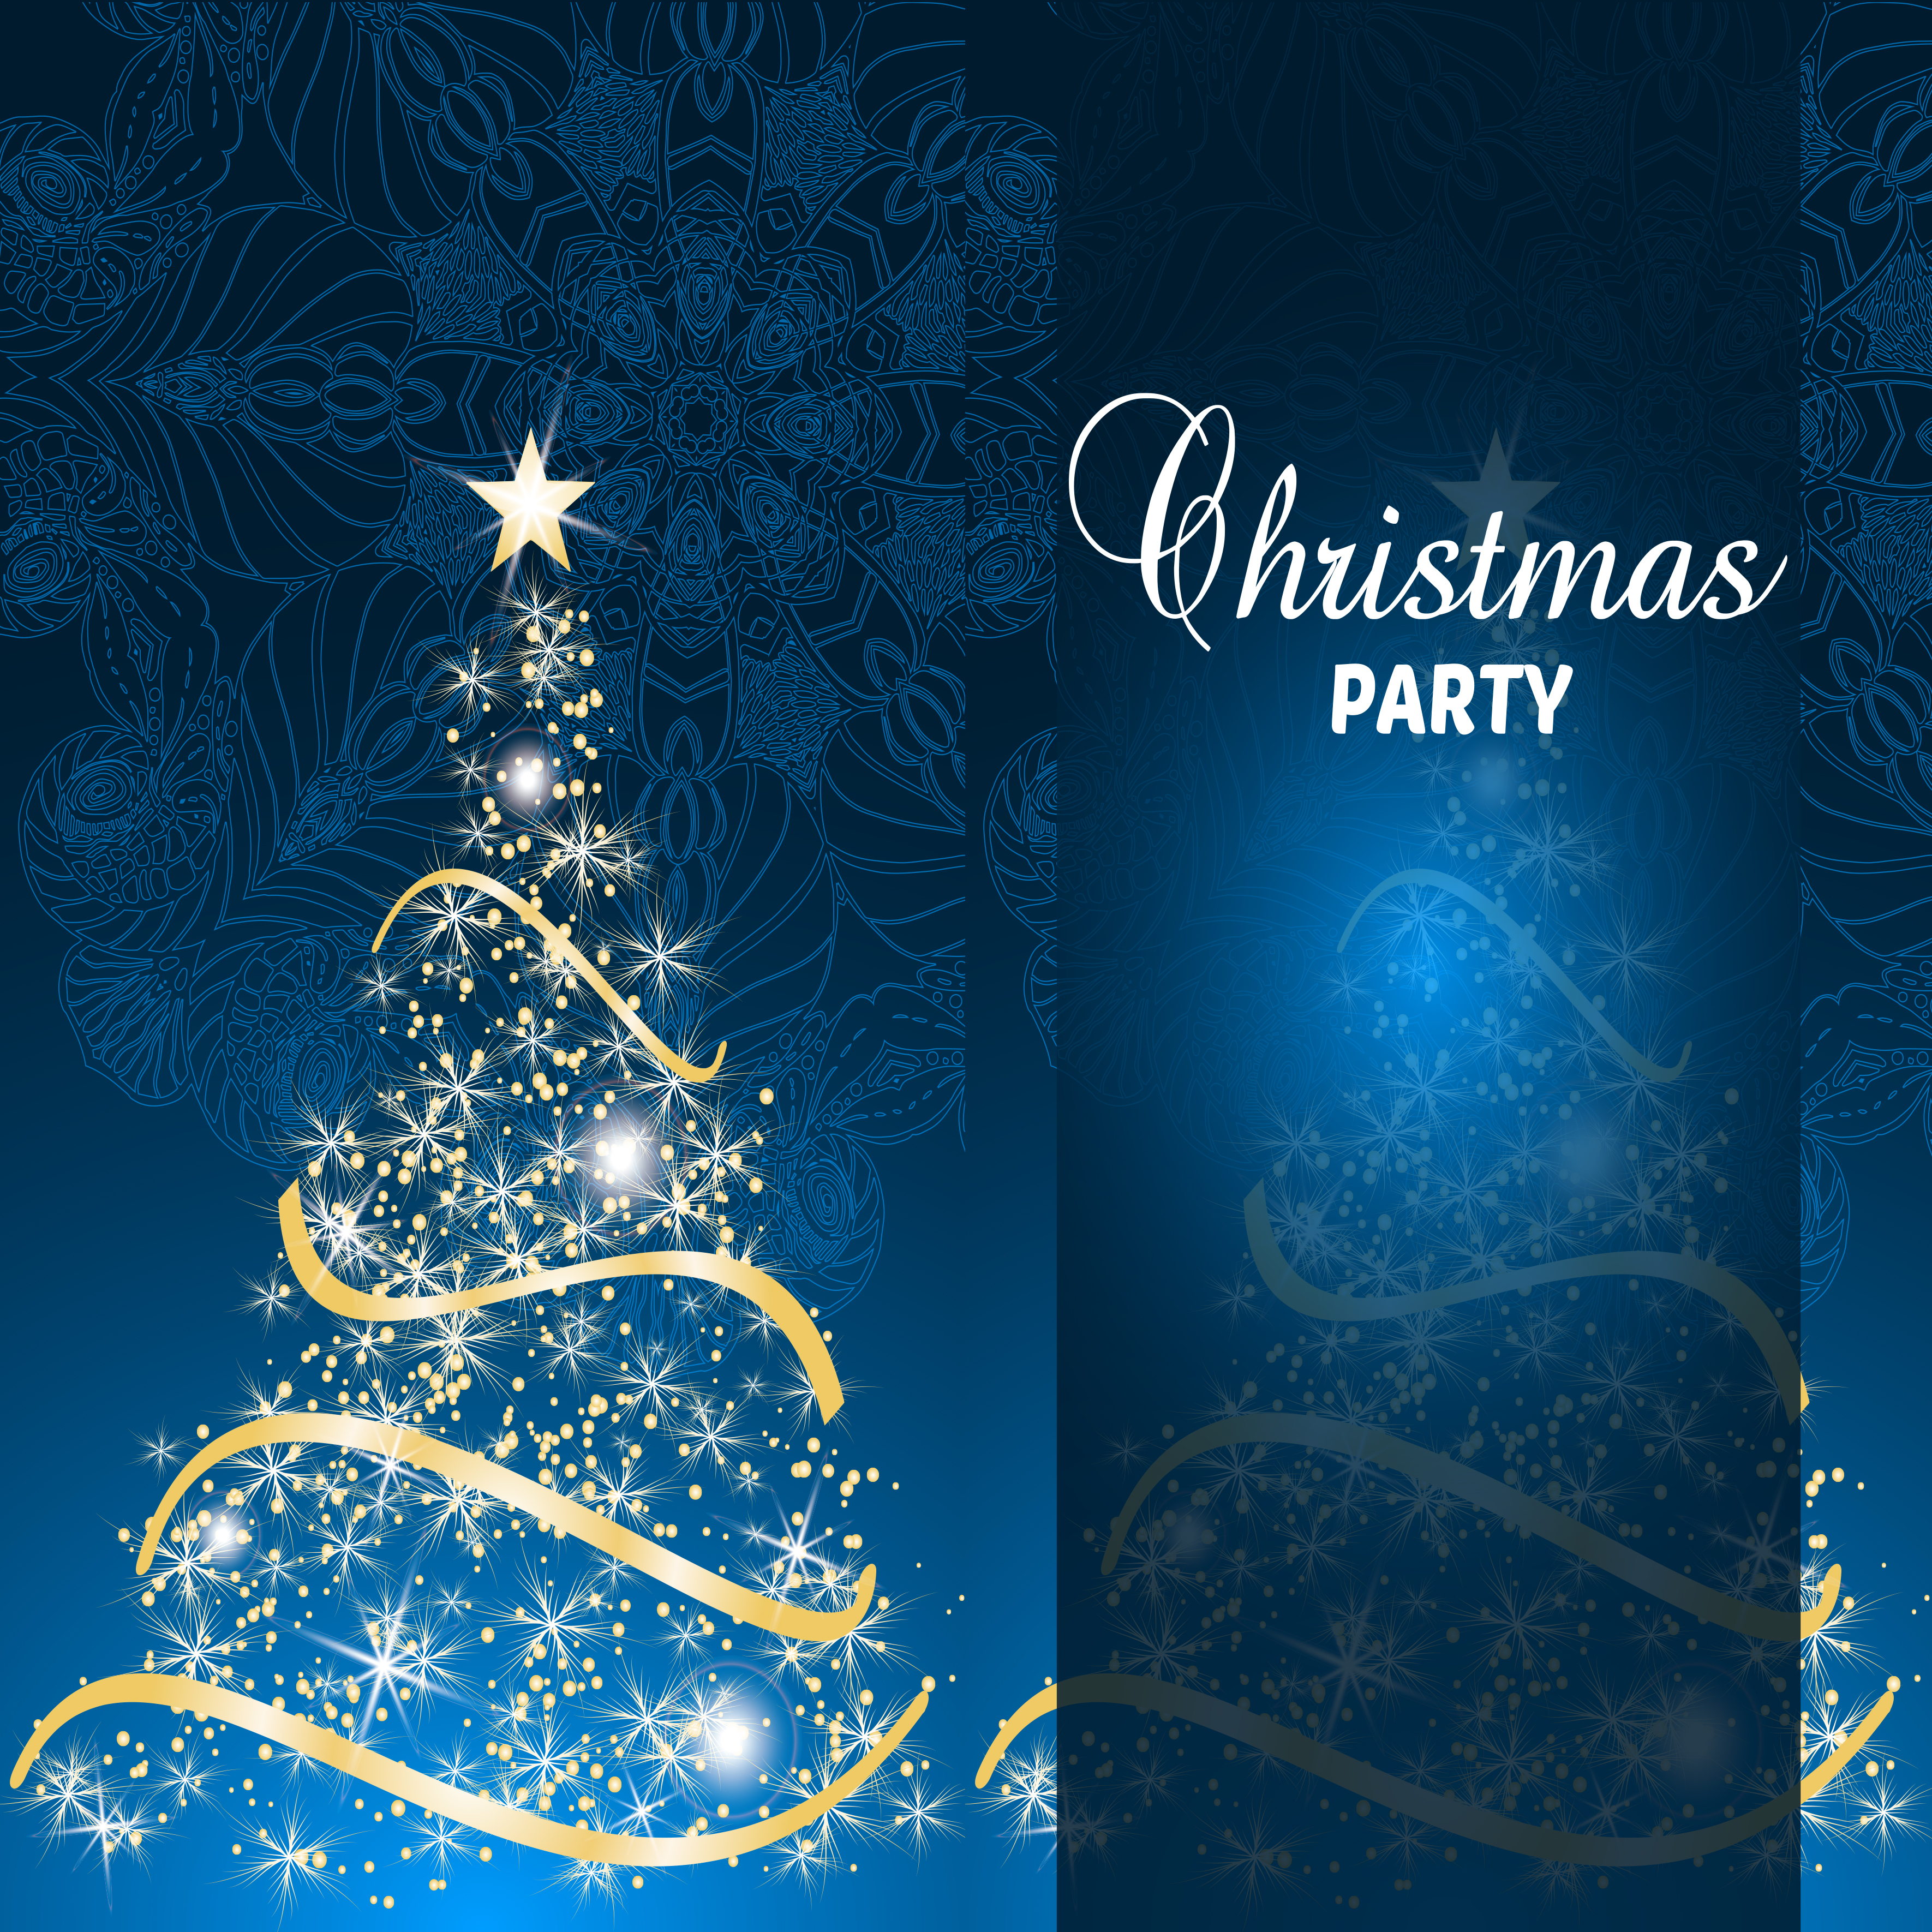 Dreams Romantic Christmas Party Blue Glare Background